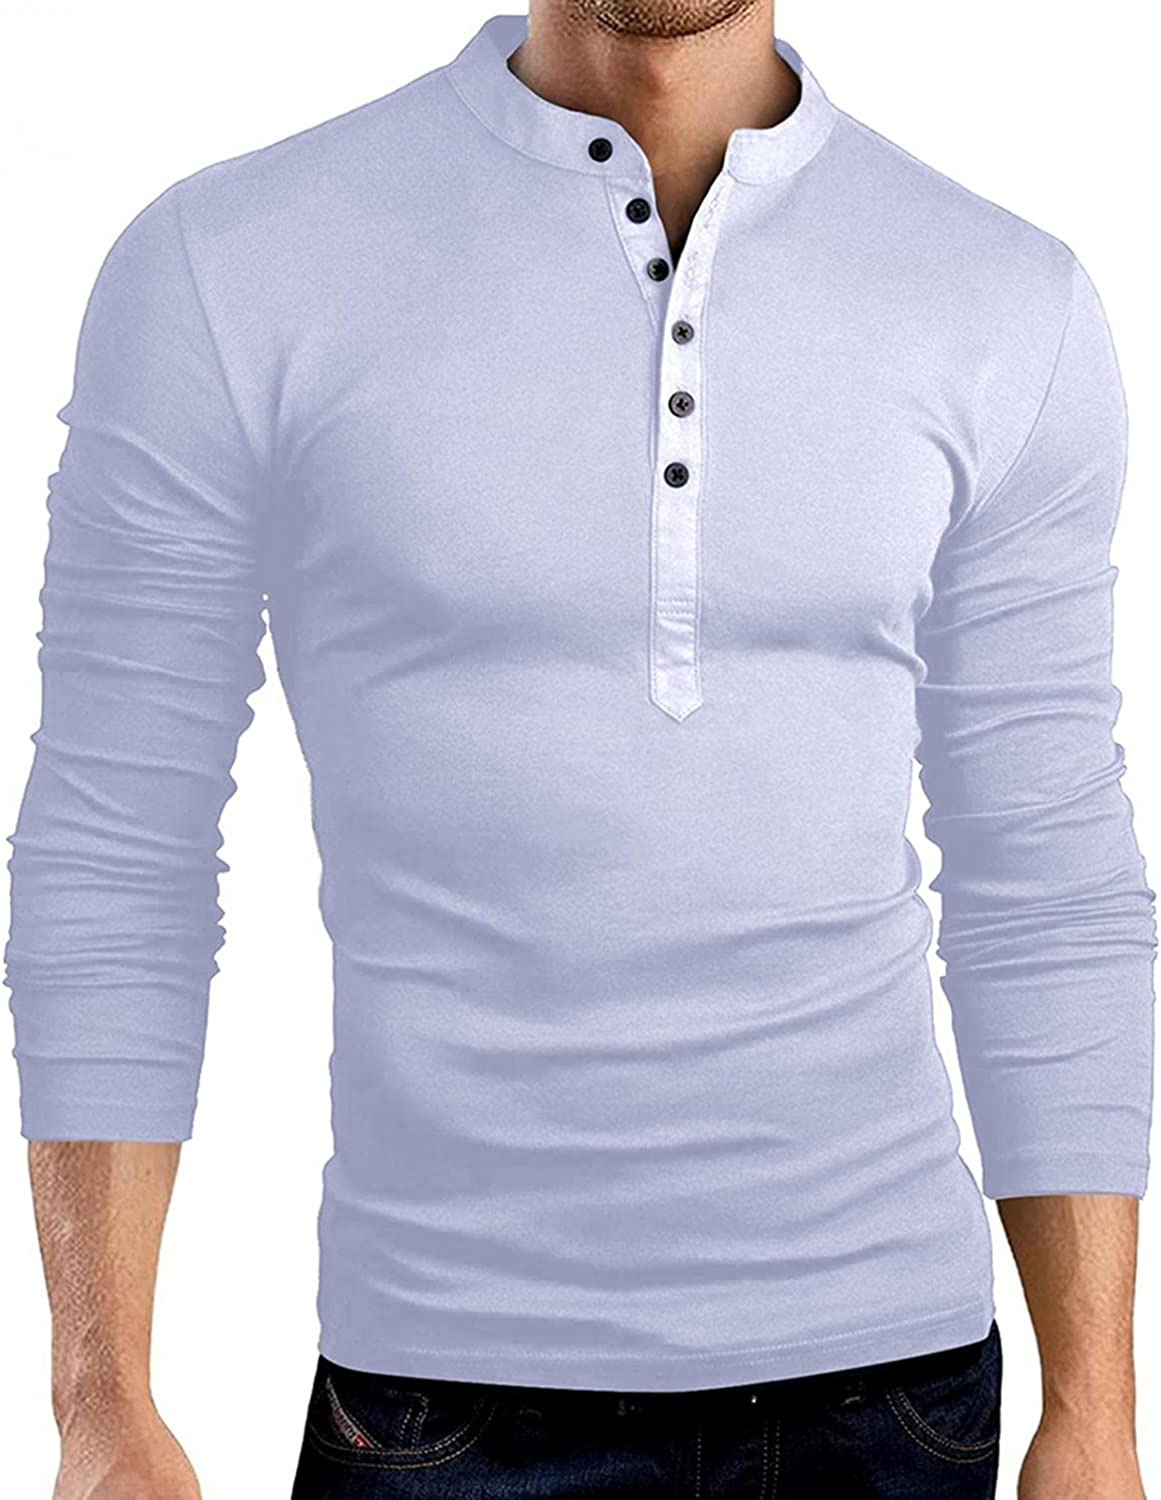 FUNEY Mens Casual Slim Fit Basic Henley Long Sleeve V Neck Solid Color Fashion T-Shirt Lightweight with Buttons